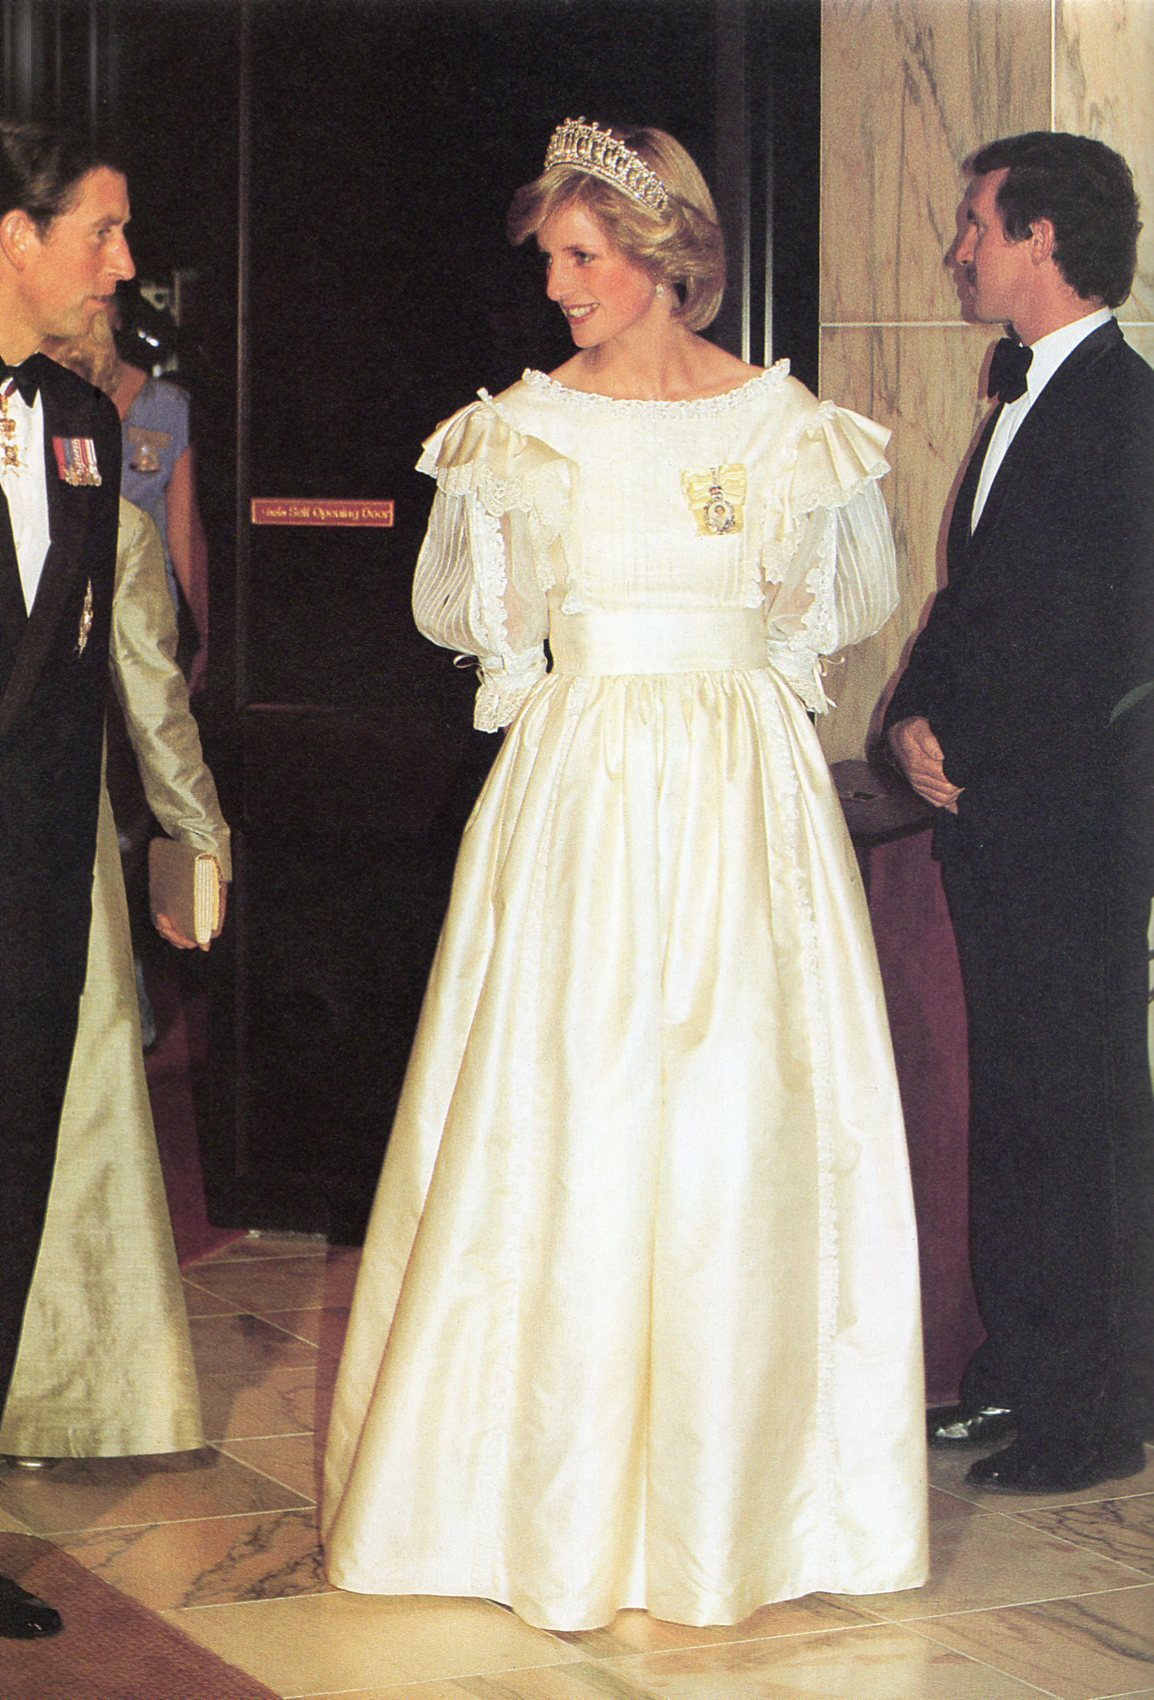 Princess Diana wearing a Gina Fratini's design in Auckland during the royal tour of New Zealand in May 1983